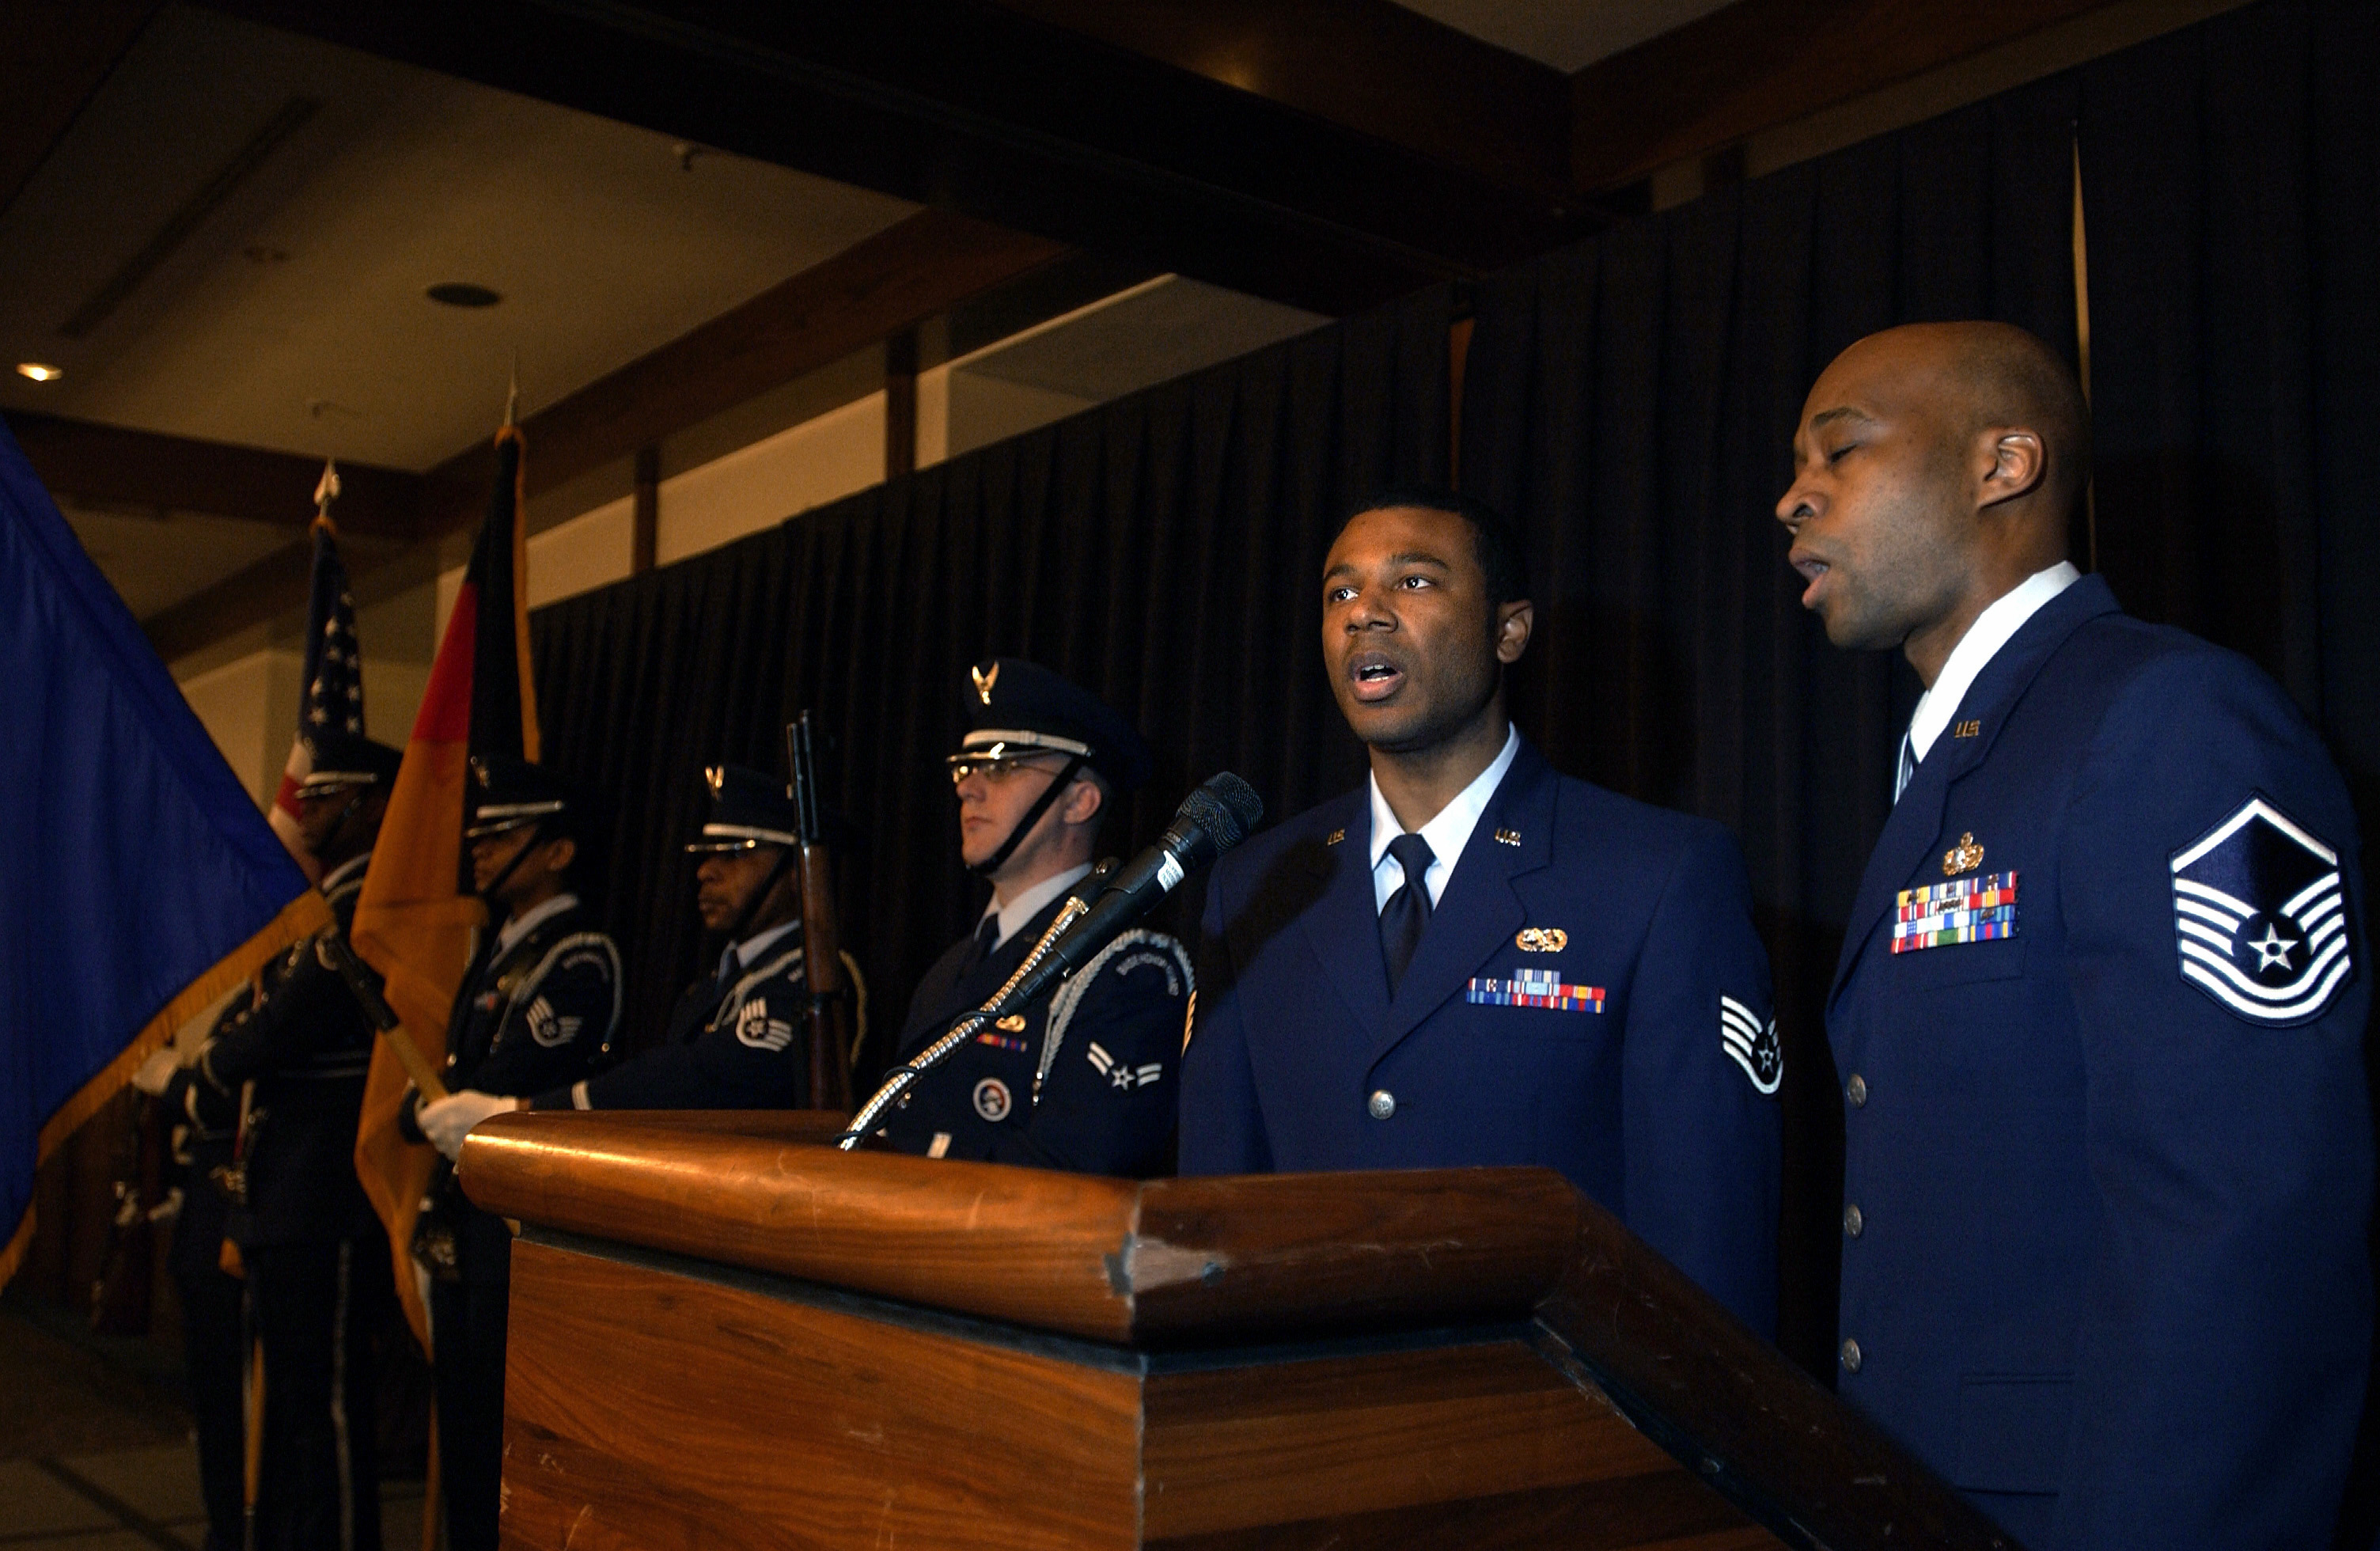 US Air Force (USAF) STAFF Sergeant (SSGT) Brandon Perkins (left) and USAF MASTER Sergeant (MSGT) Edward Shepard sing the American and German national anthems during the Kaiserslautern African-American Heritage Committee luncheon. The Kaiserslautern African-American Heritage Committee luncheon held at the Ramstein Air Base (AB) Officers Club, Germany as part of African-American Heritage Month